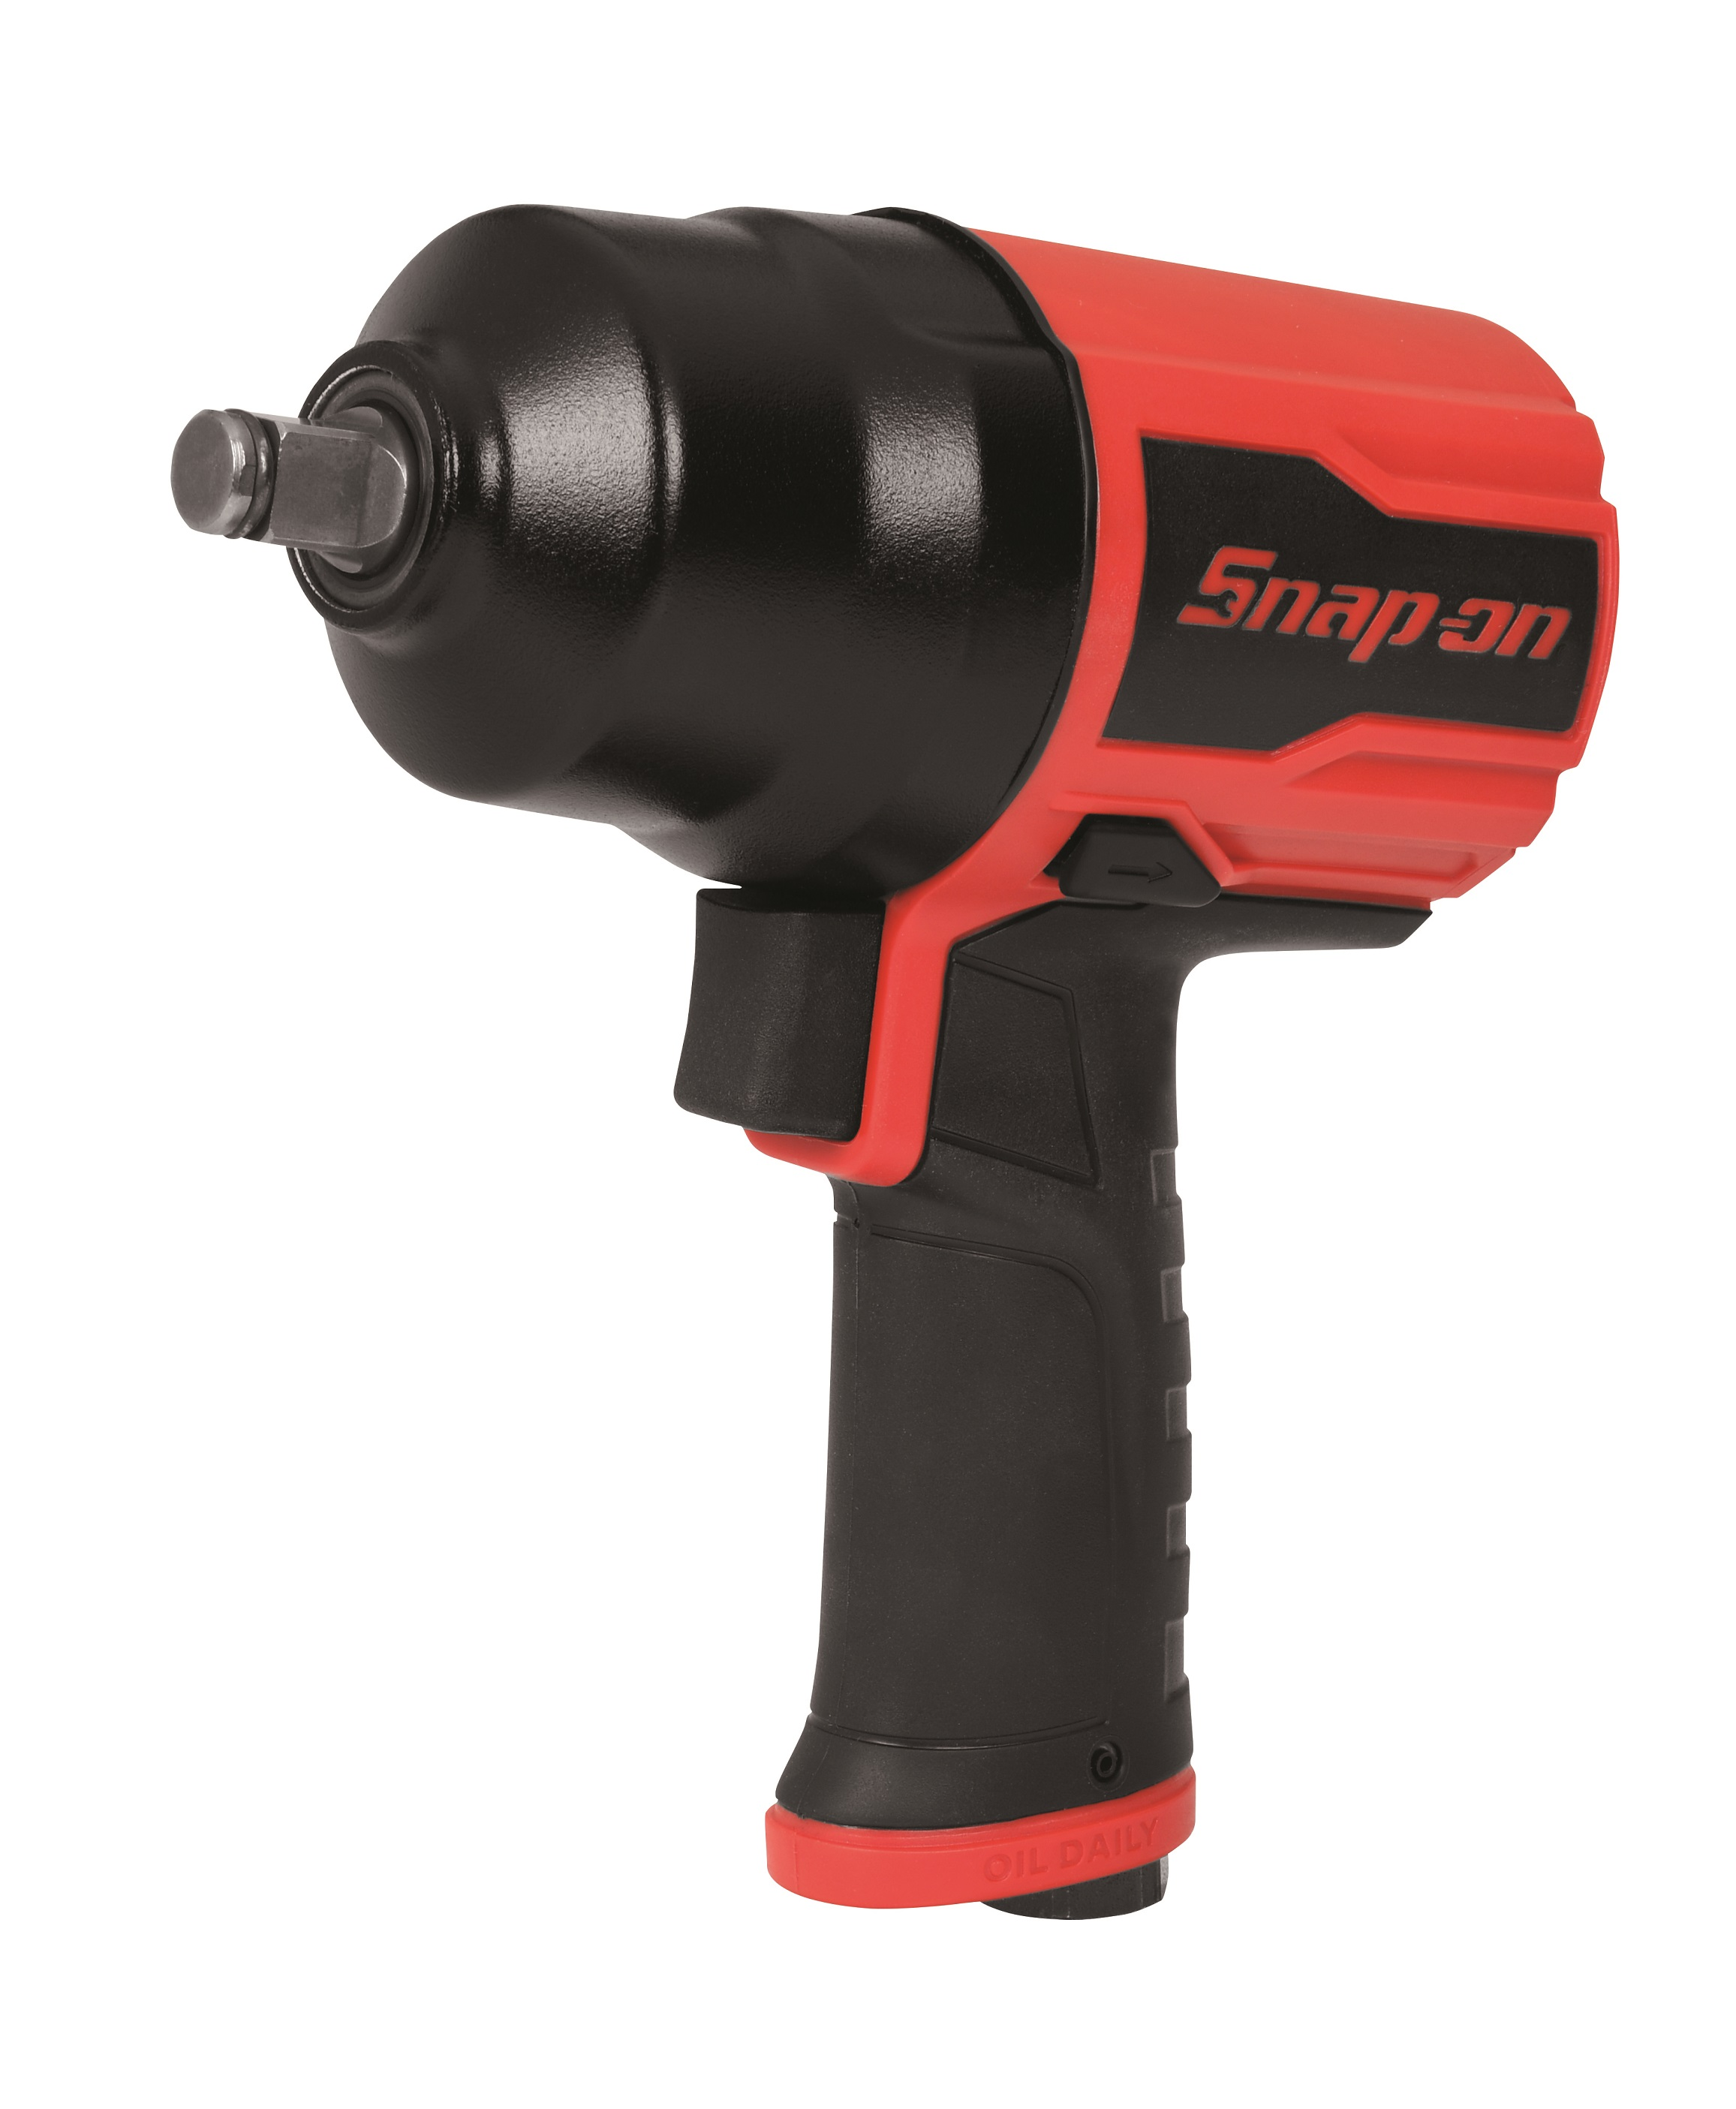 Snap On Pt850 1 2 Inch Air Impact Wrench Contractor